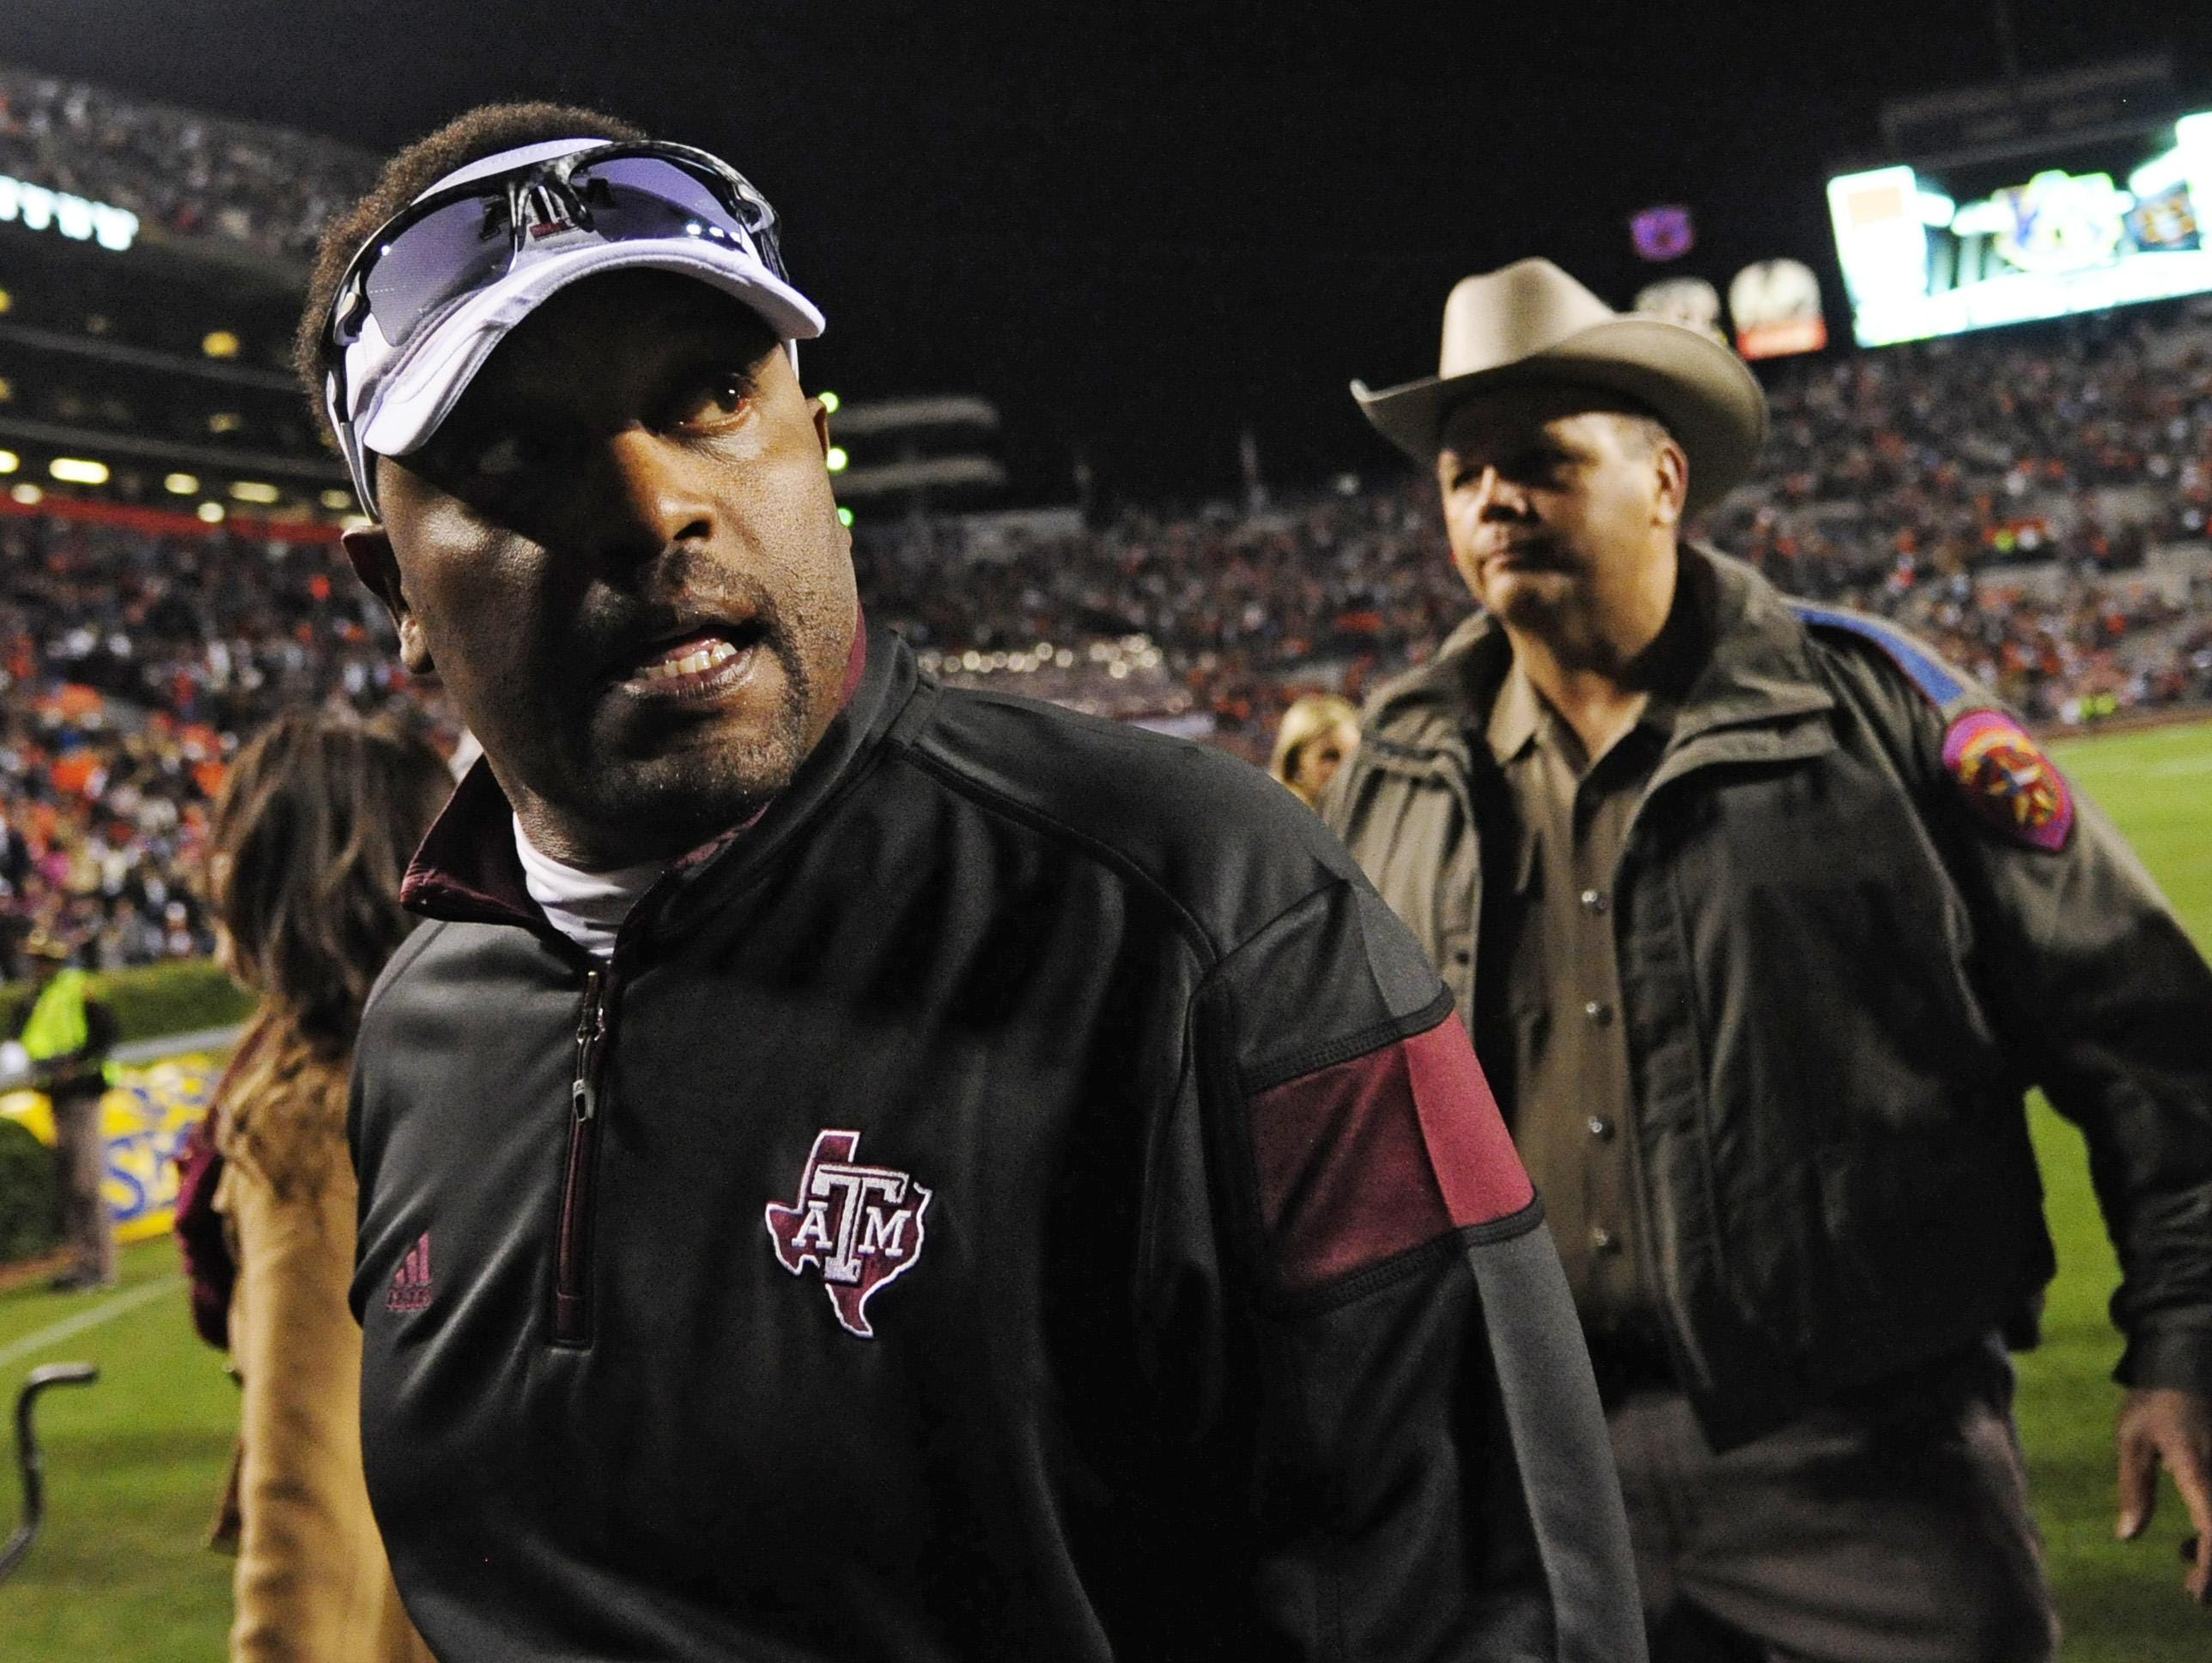 Texas A&M's Kevin Sumlin is the SEC's second-highest paid coach at $5 million a season, but has seen the Aggies go from 11-2 his first season to 8-5 in his third.